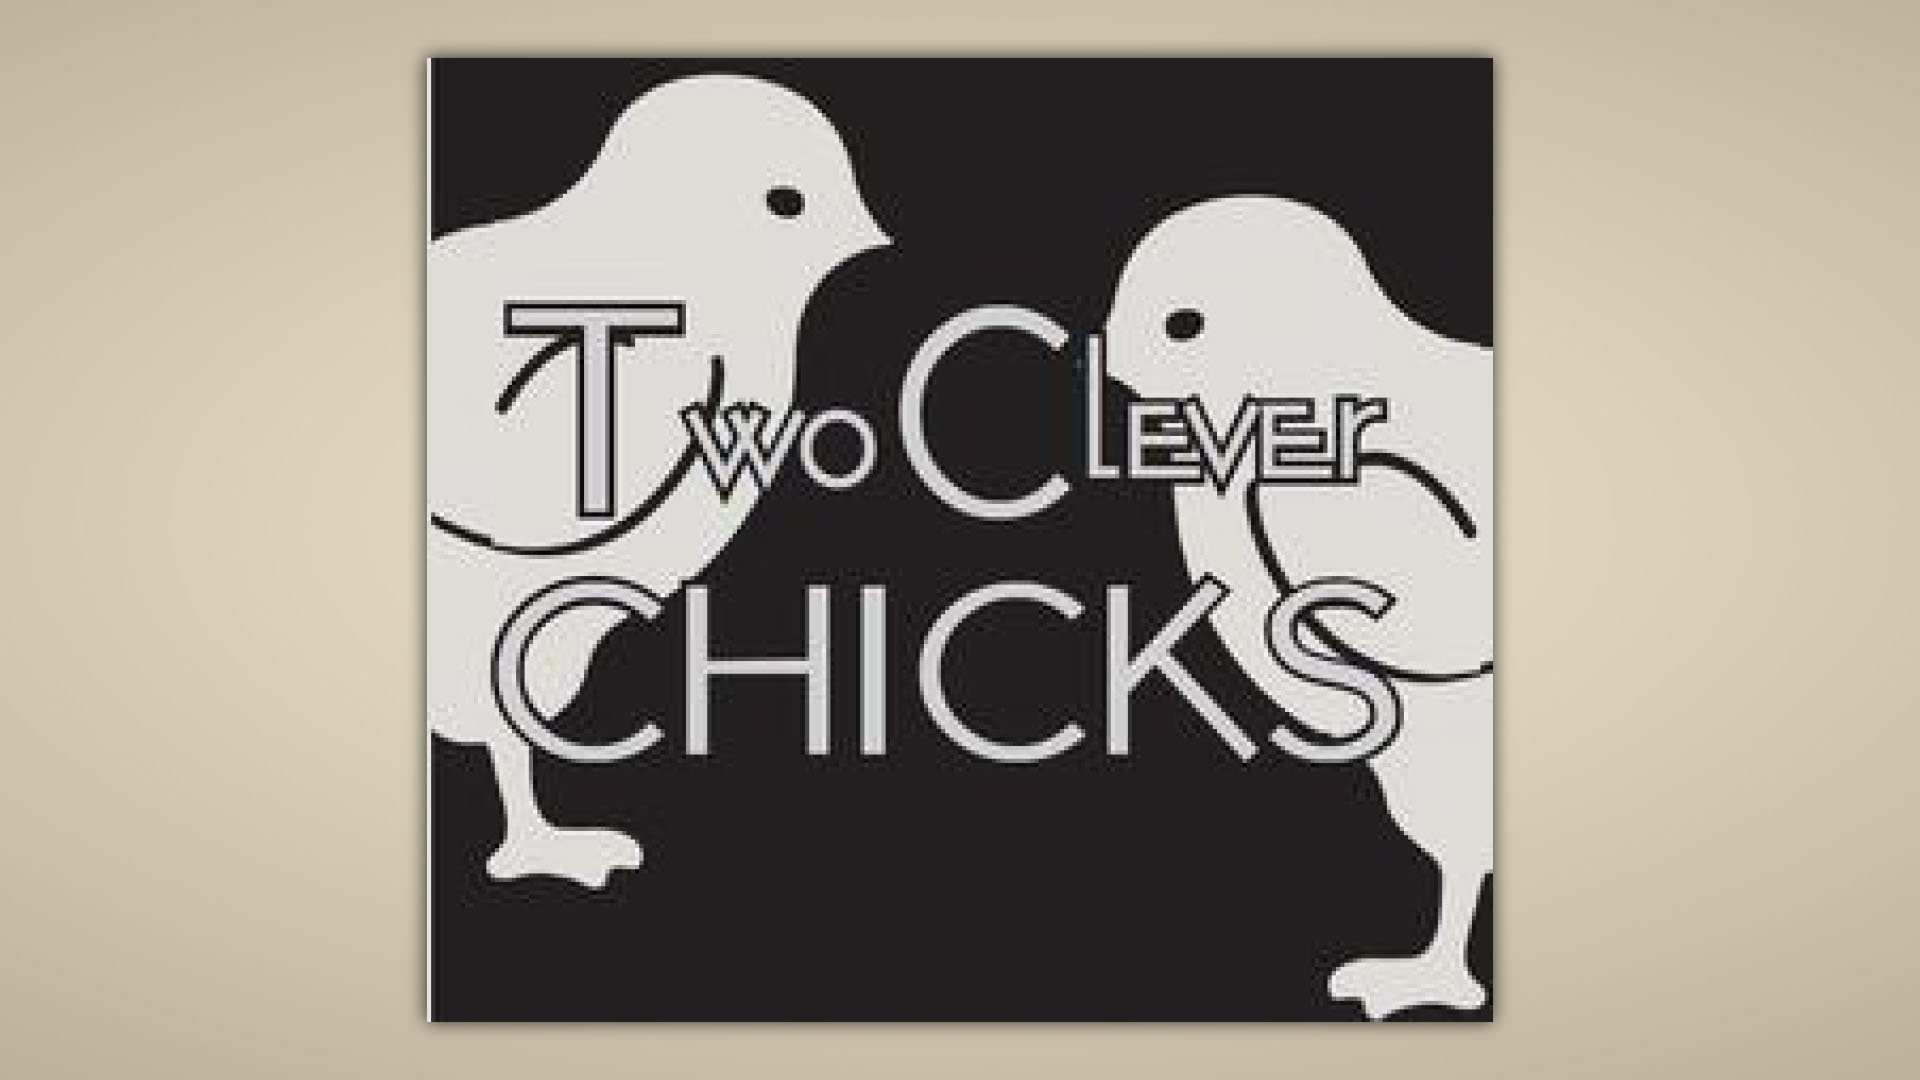 Two Clever Chicks